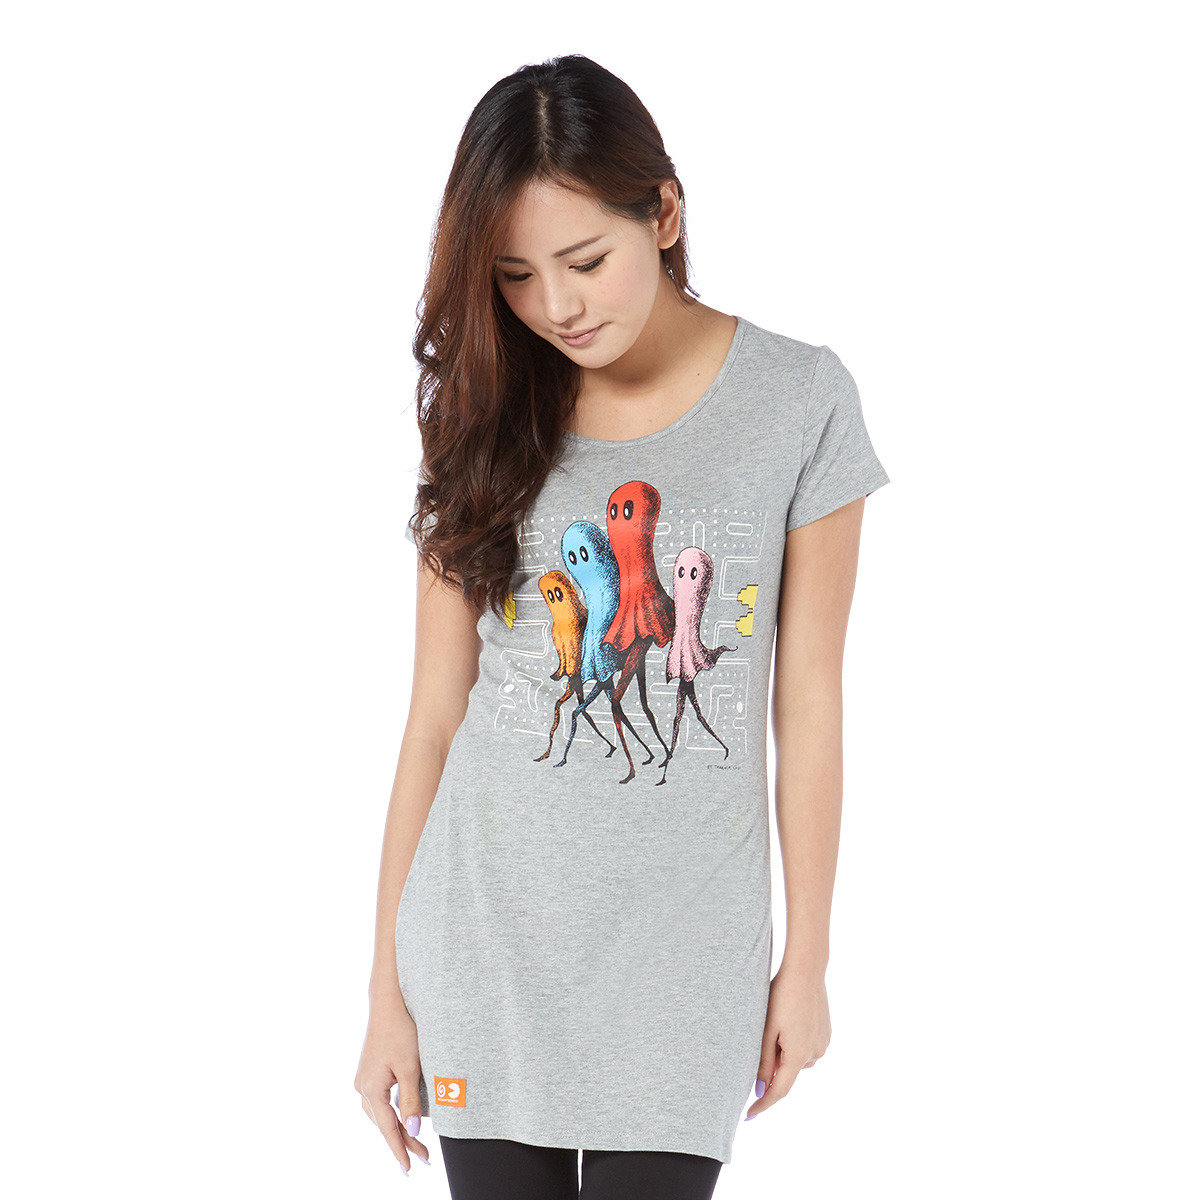 Ginger x Pac-man x Skittles local artists collaboration, Lady Slim Long Tee